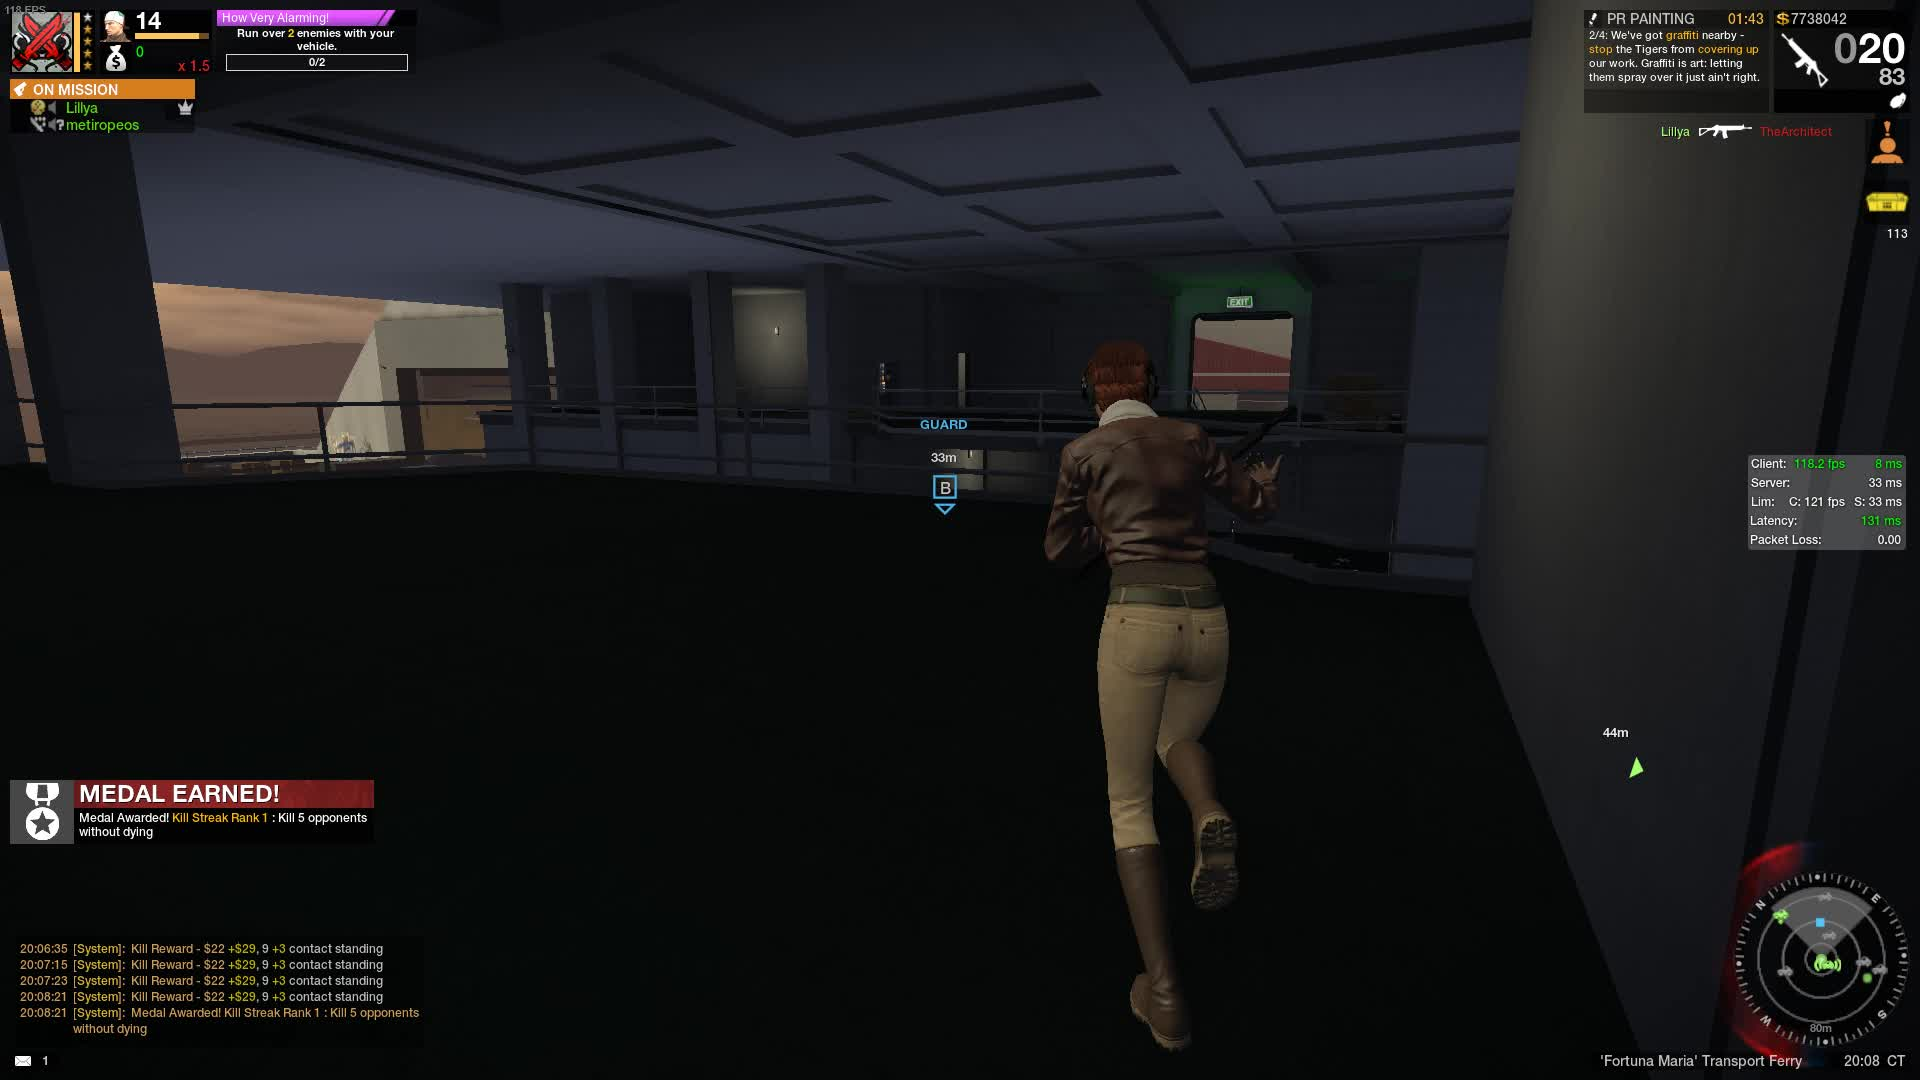 apb, apb reloaded, APB - warps 1 GIFs